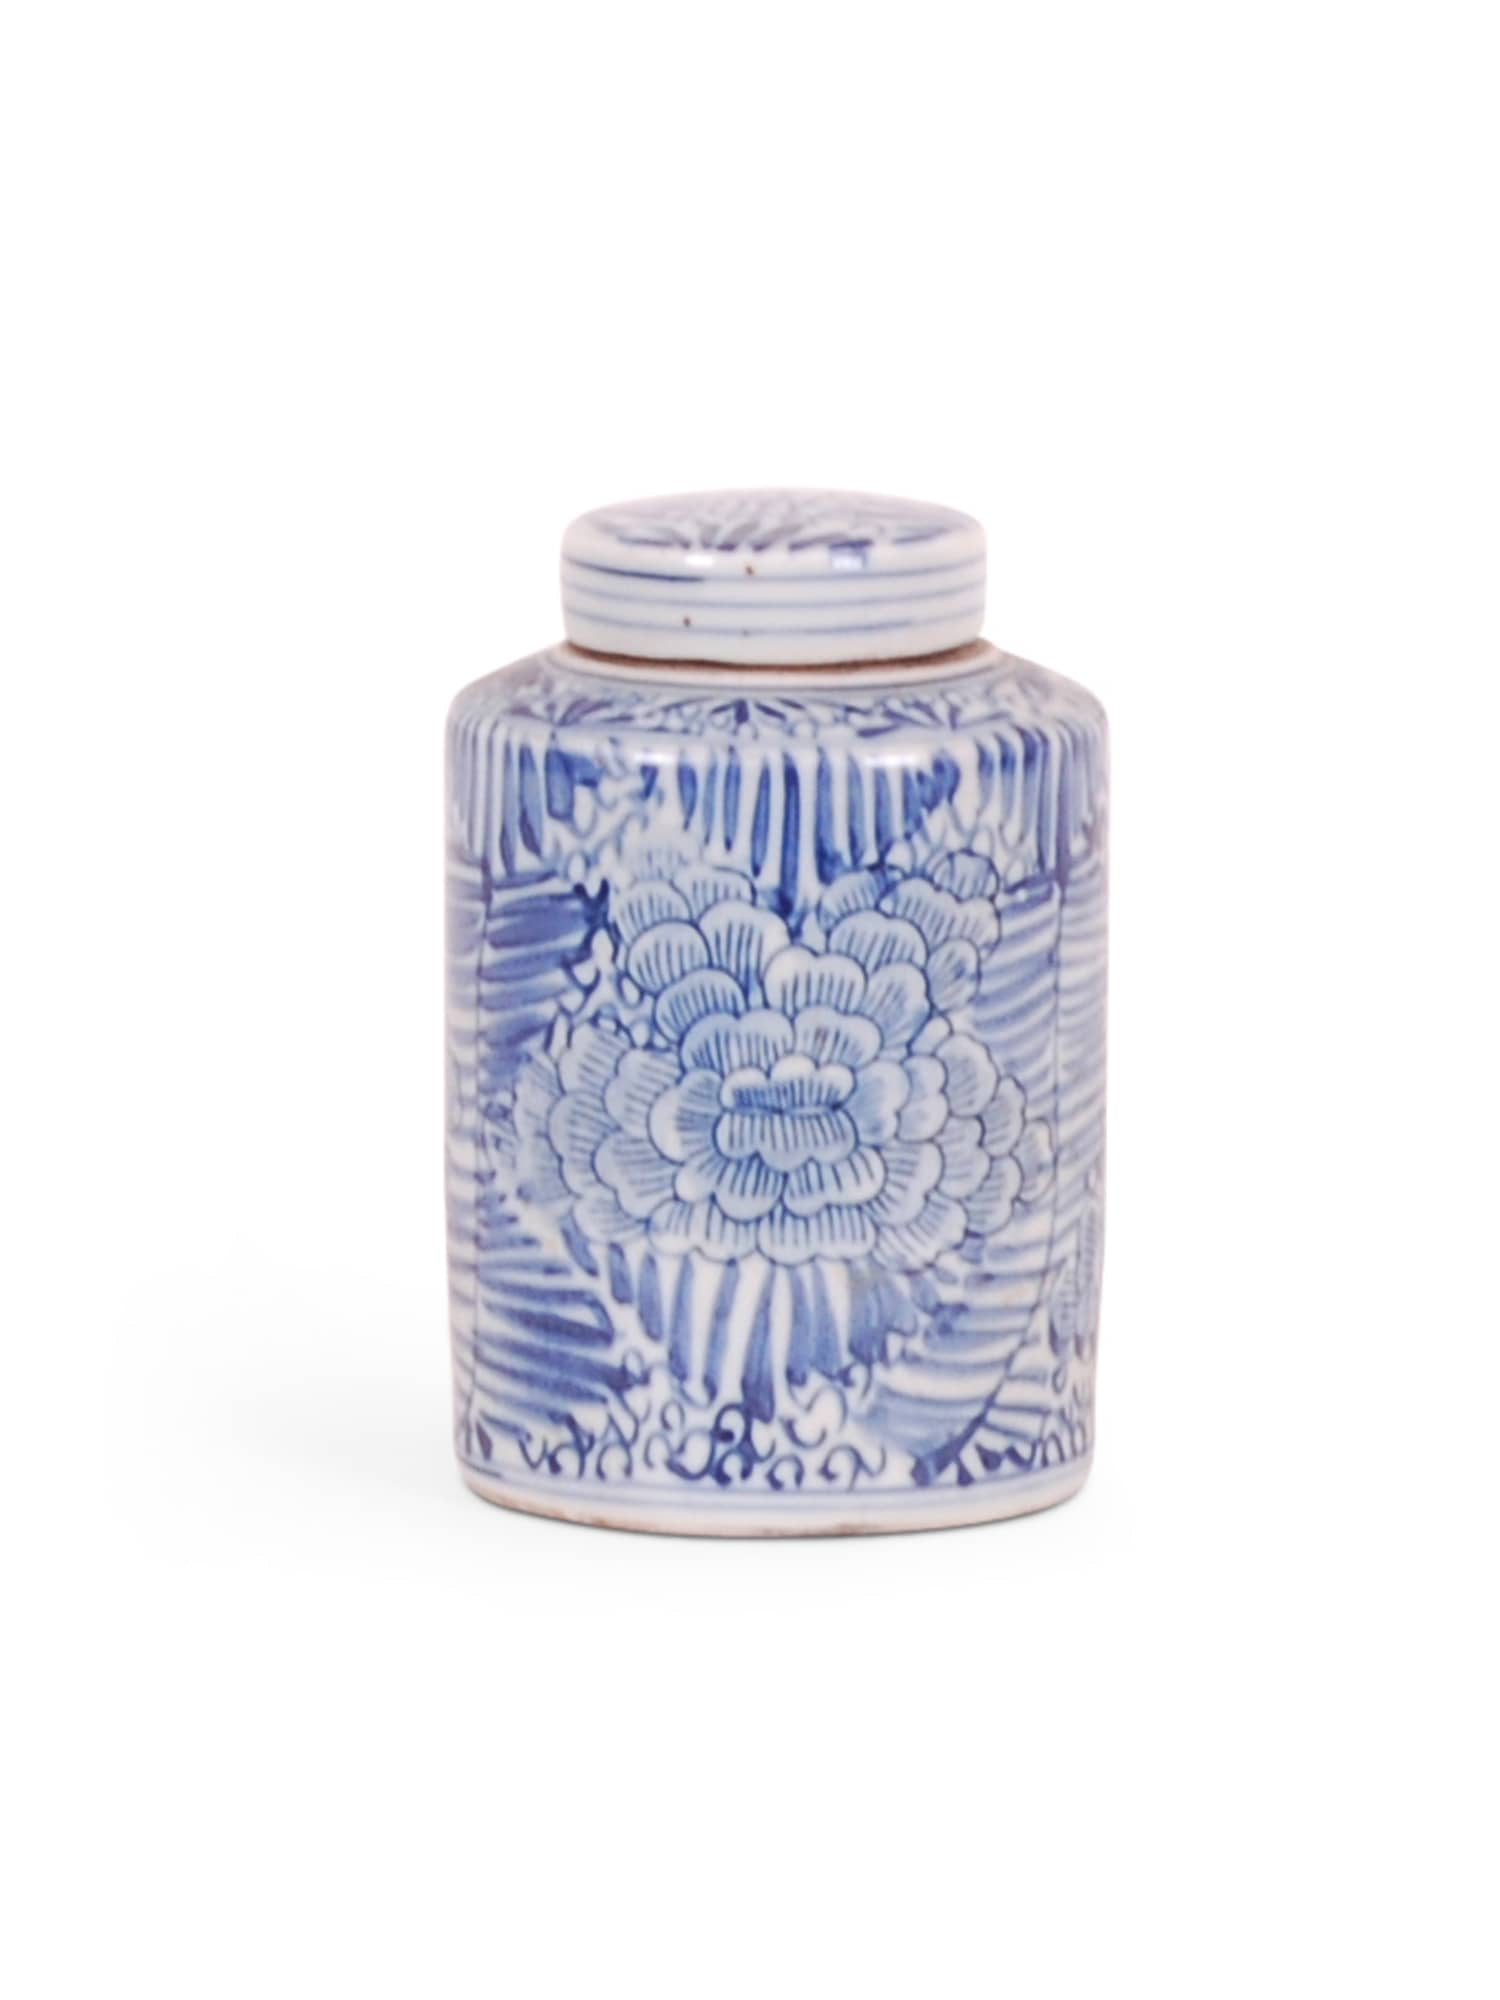 Stroke Floral Tea Caddy - Amy Berry Home